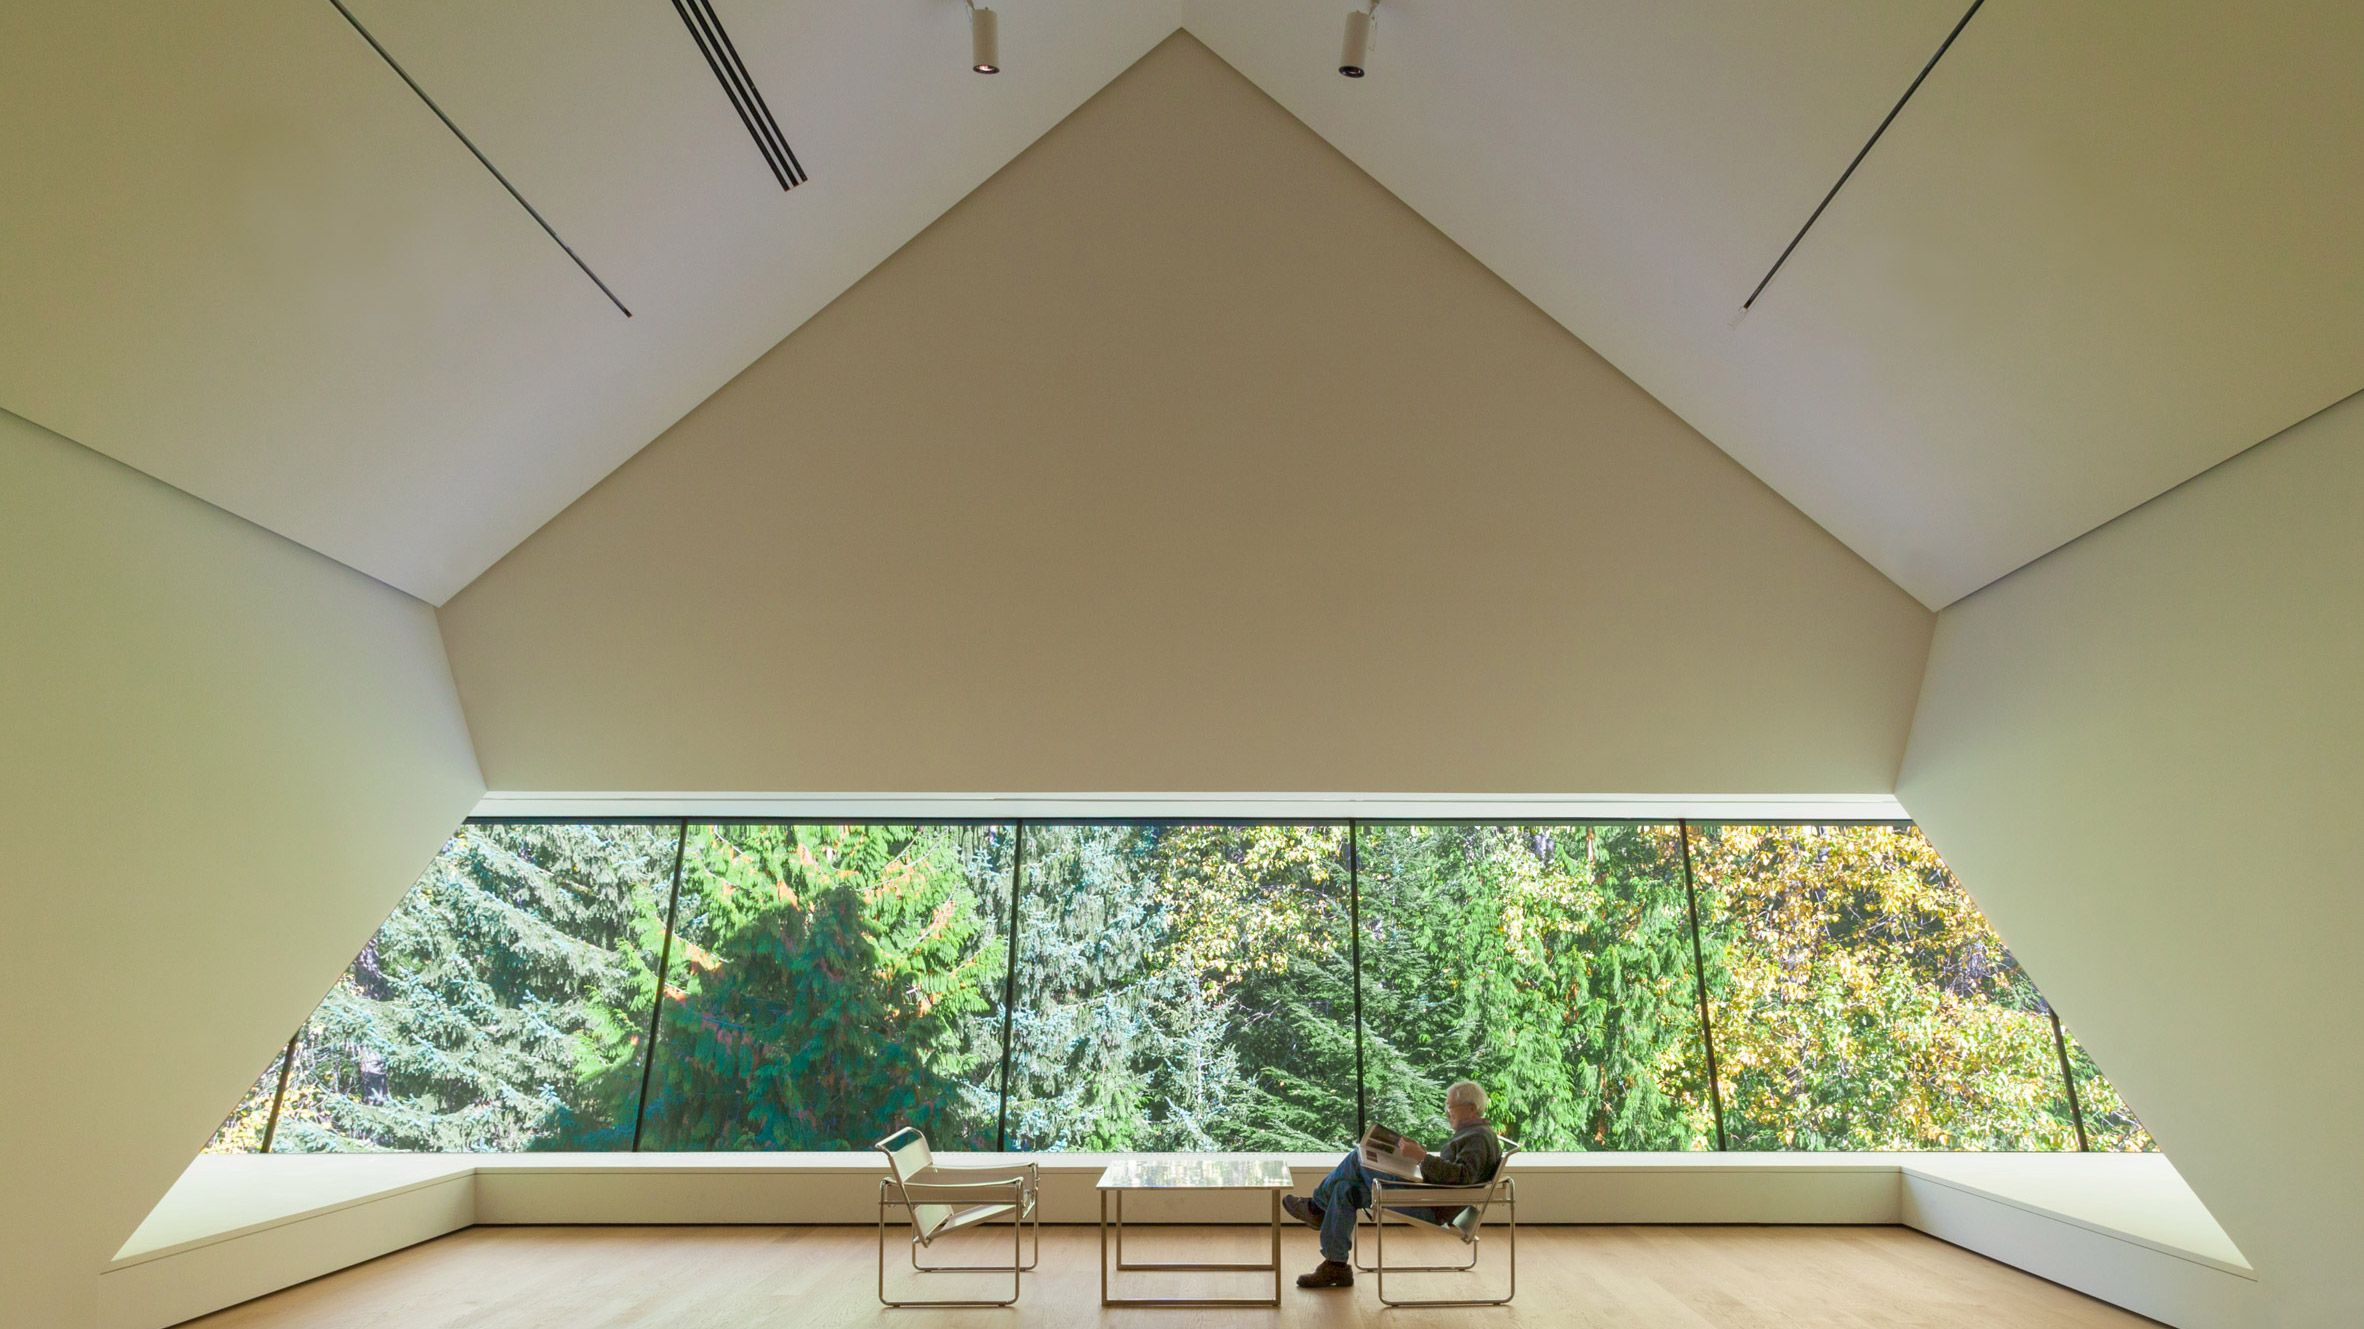 Pitched roofs and wooden slats characterise audain art museum